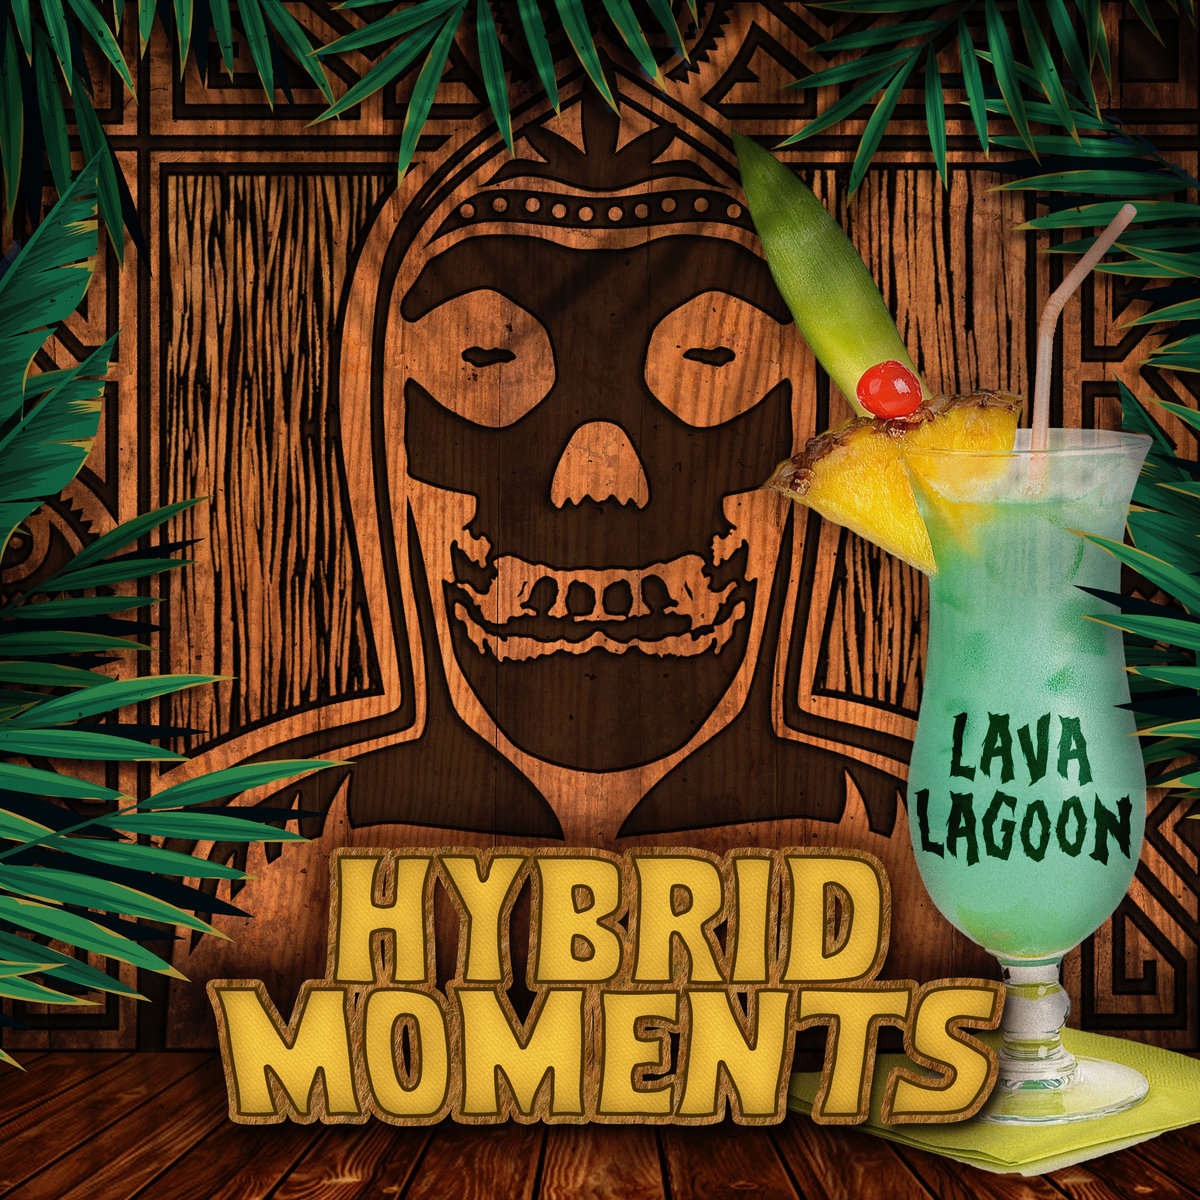 Hybrid Moments by Lava Lagoon